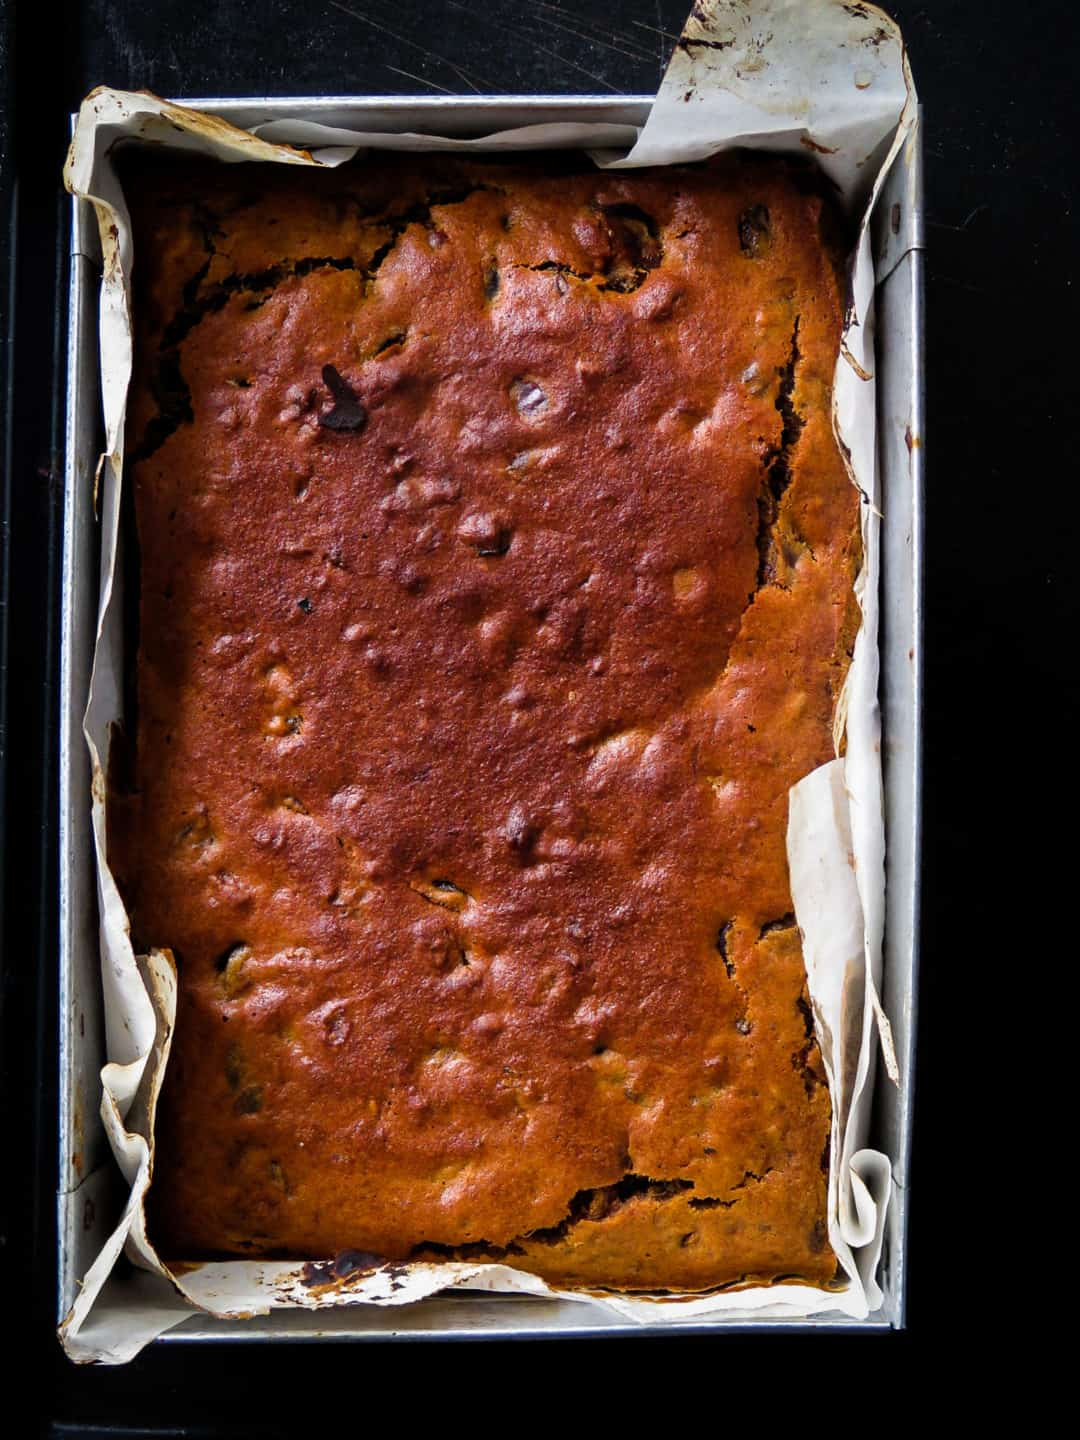 Cashew-raisin moist date cake- with chunky pieces of dates for you to enjoy, this super moist date cake will be the ideal treat when you need a spiced up cake-islandsmile.org